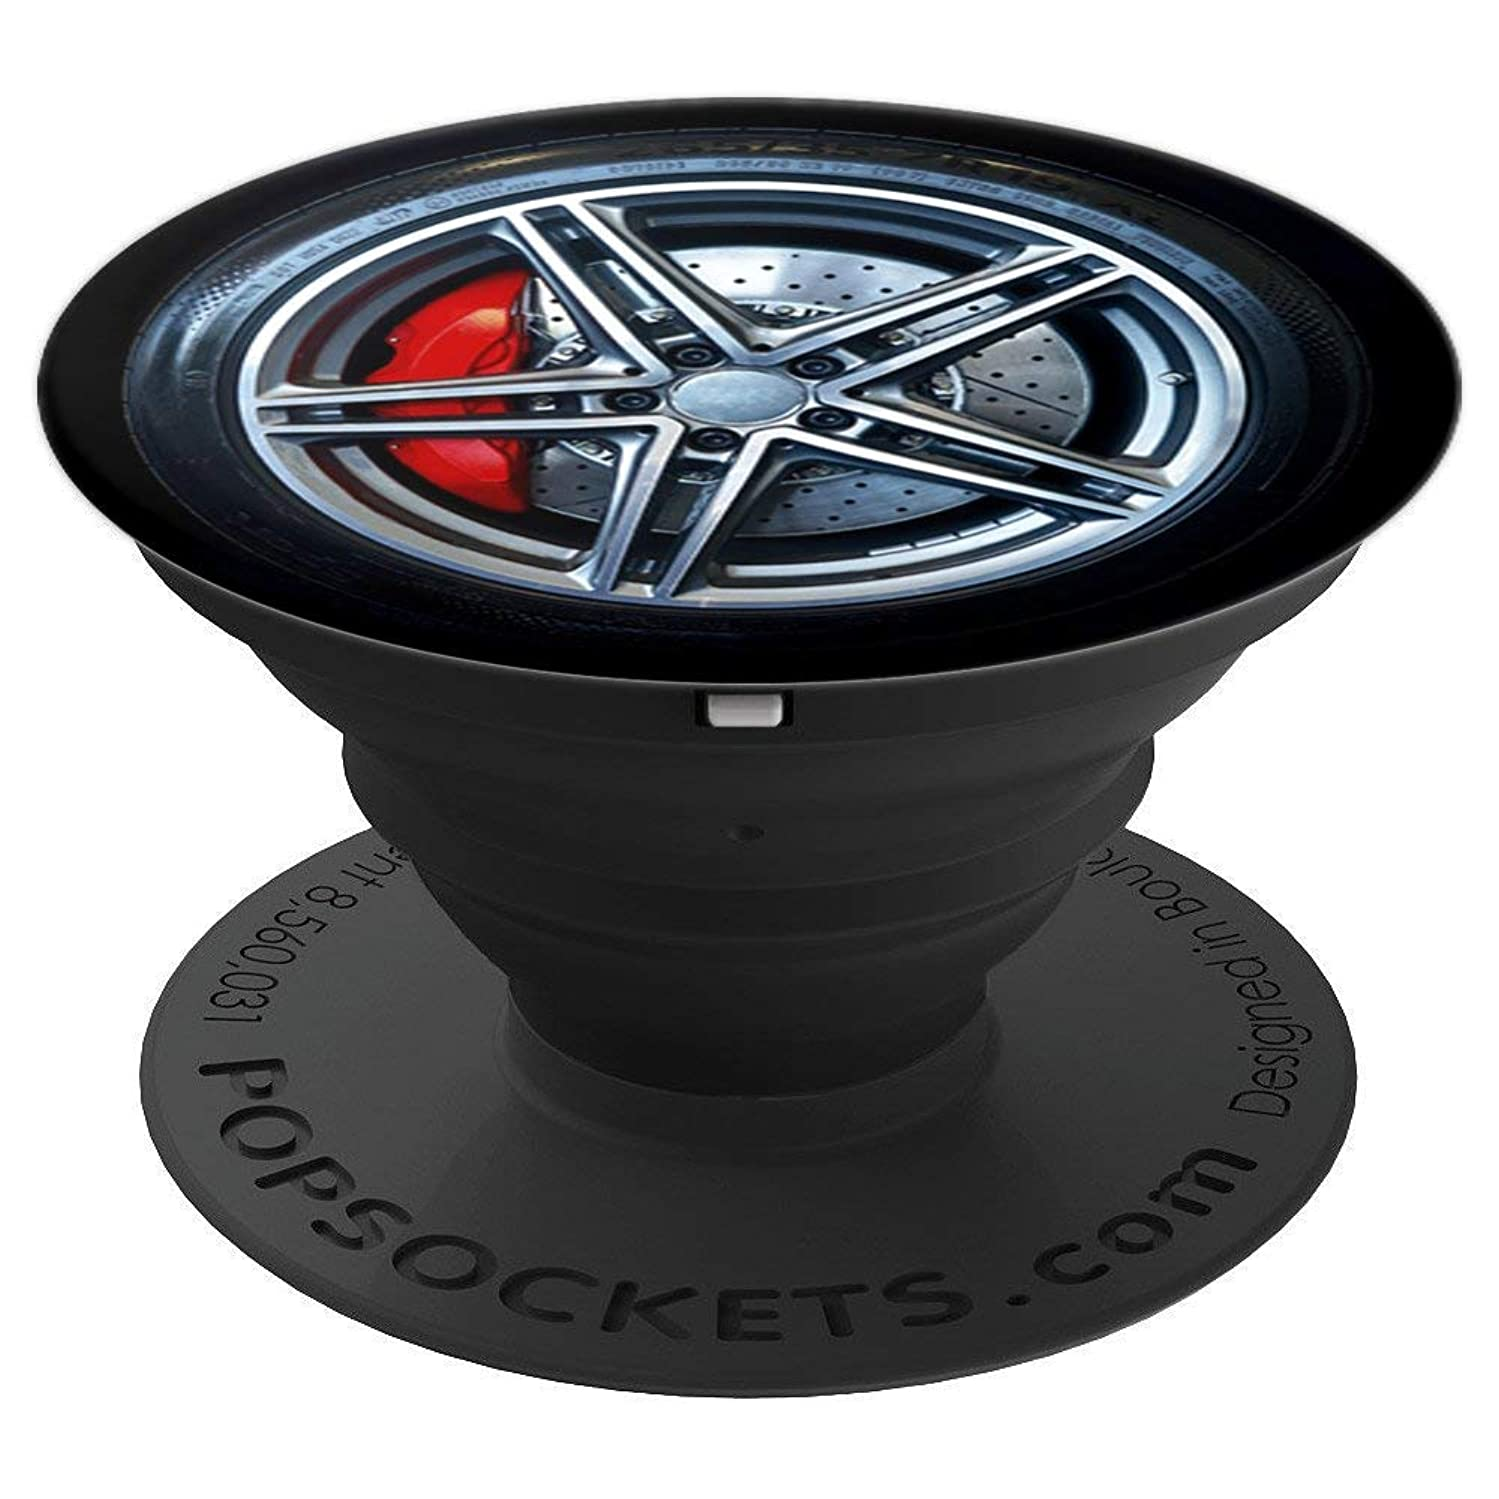 Racing Car Design Rim Tire Wheel Gift For Men Boys - PopSockets Grip and Stand for Phones and Tablets